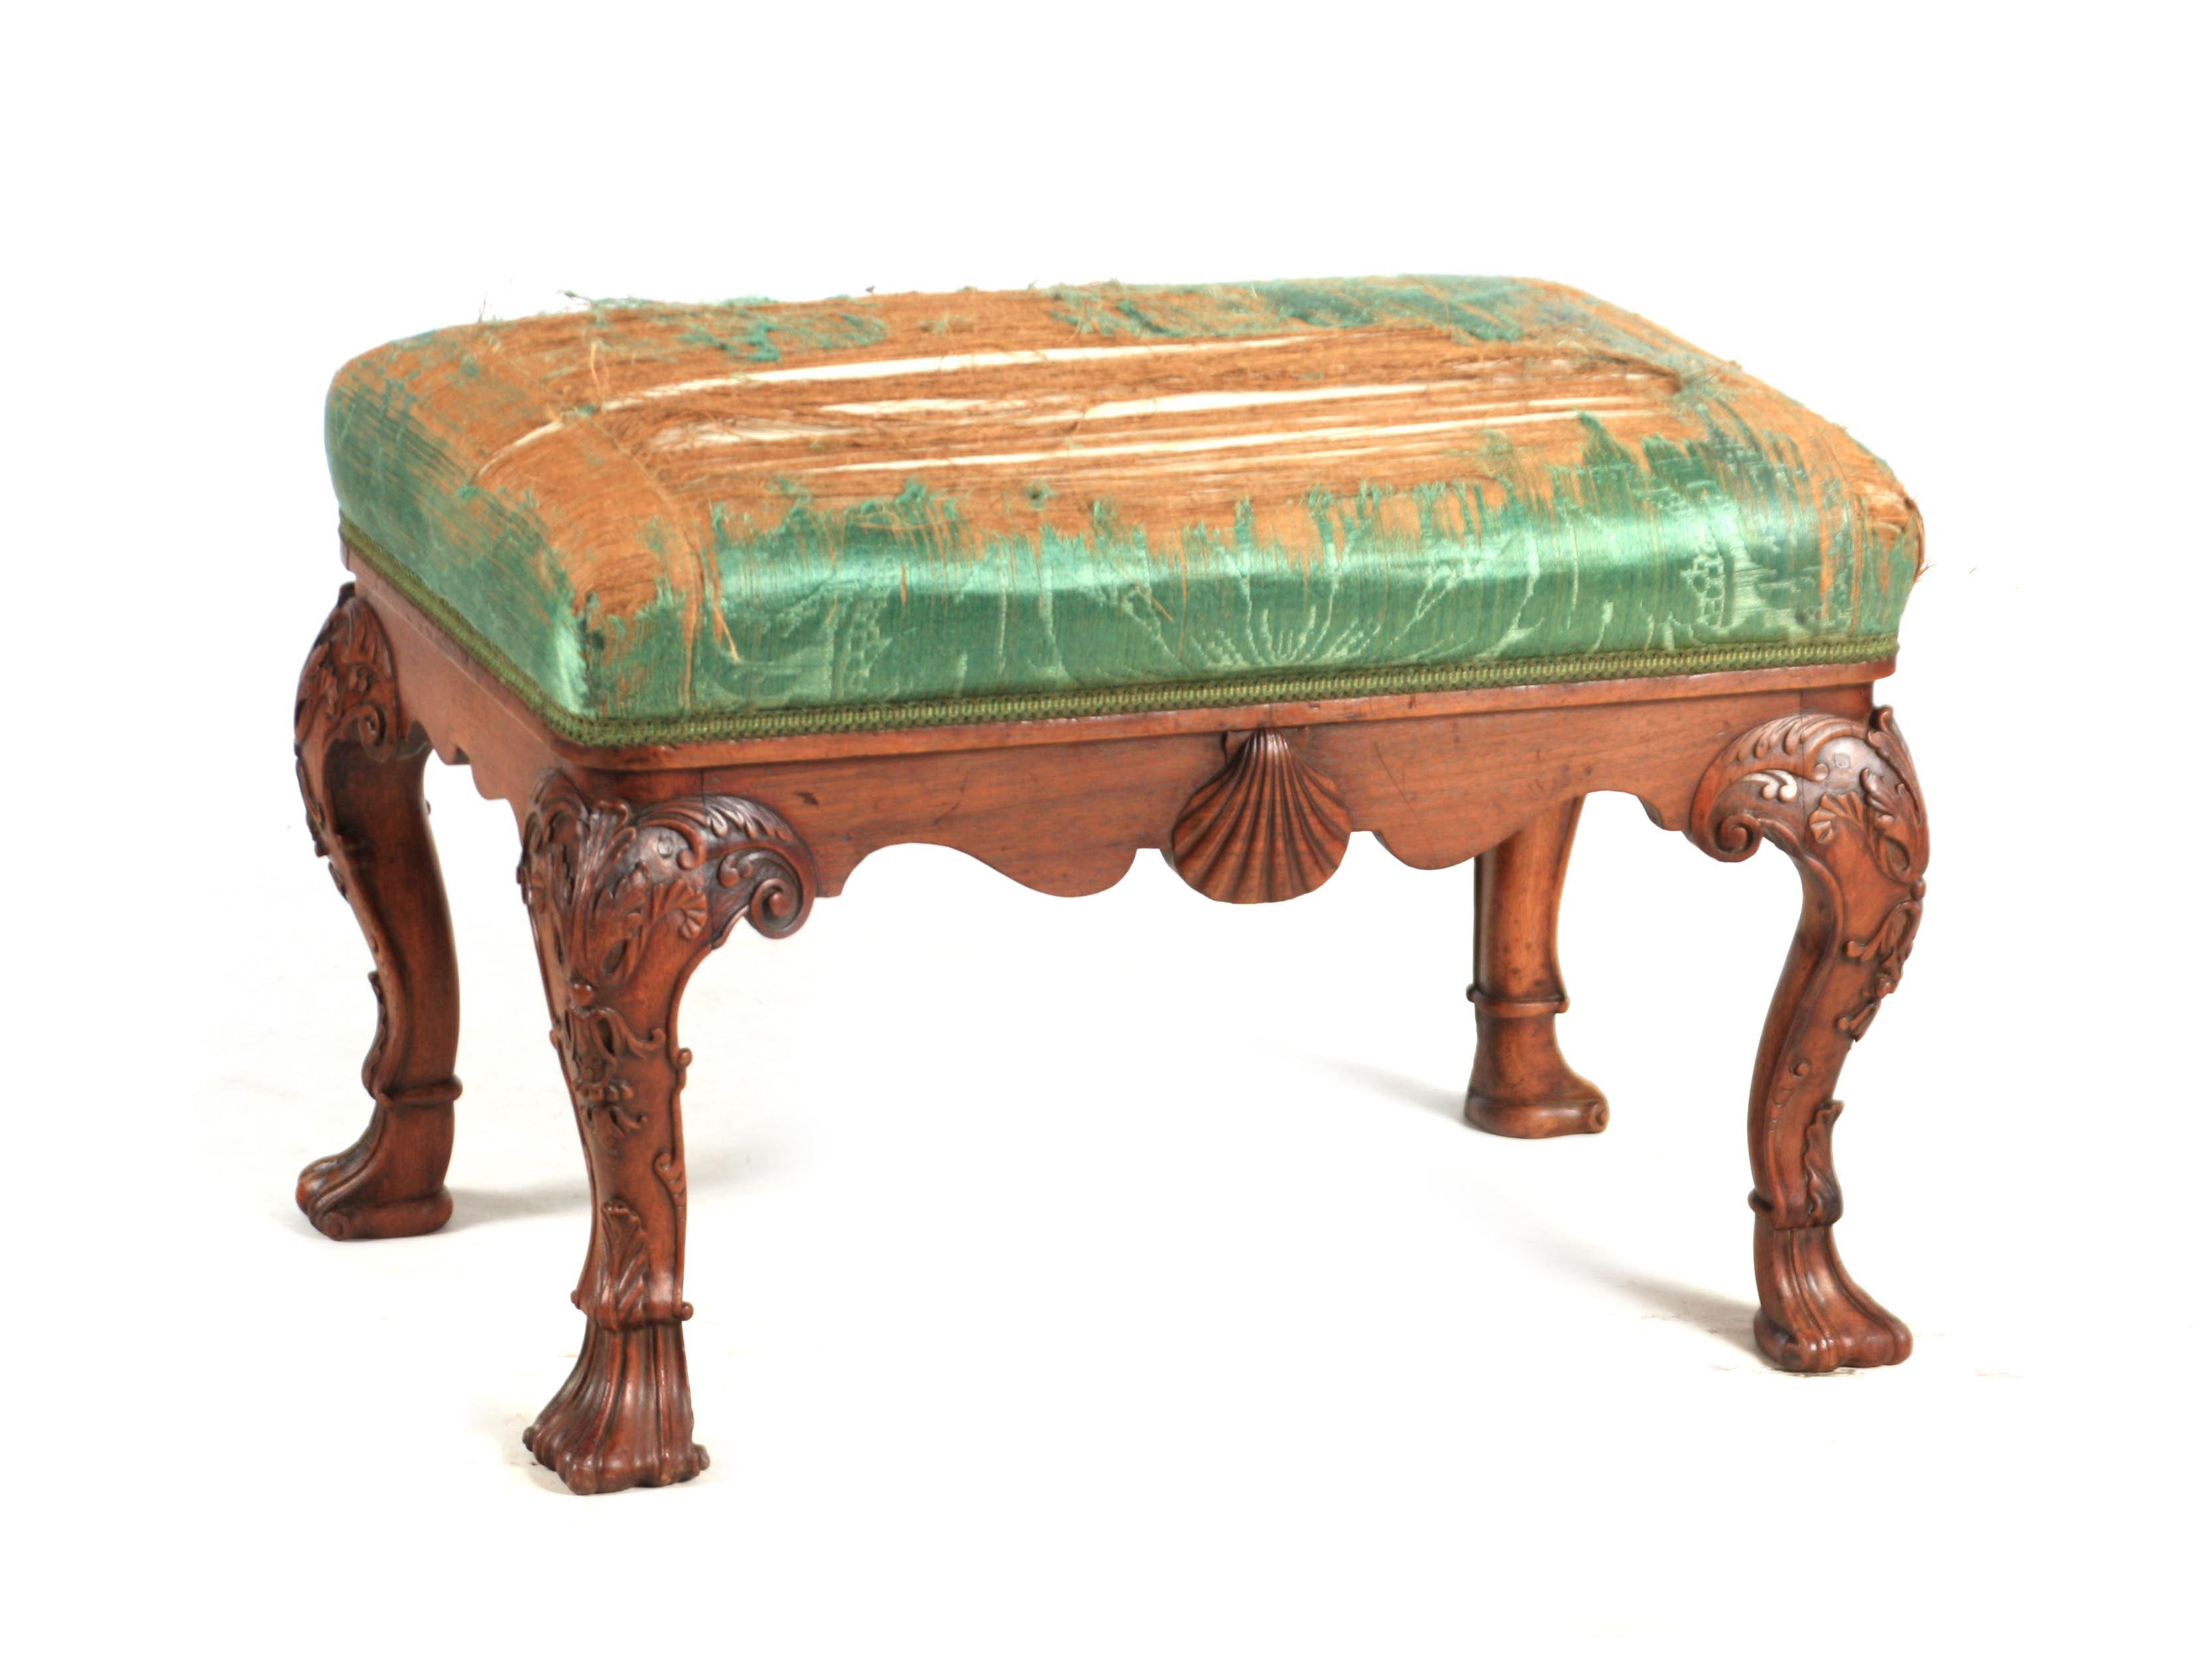 A MID 18TH CENTURY IRISH STYLE MAHOGANY DRESSING TABLE STOOL with upholstered top above shaped rails